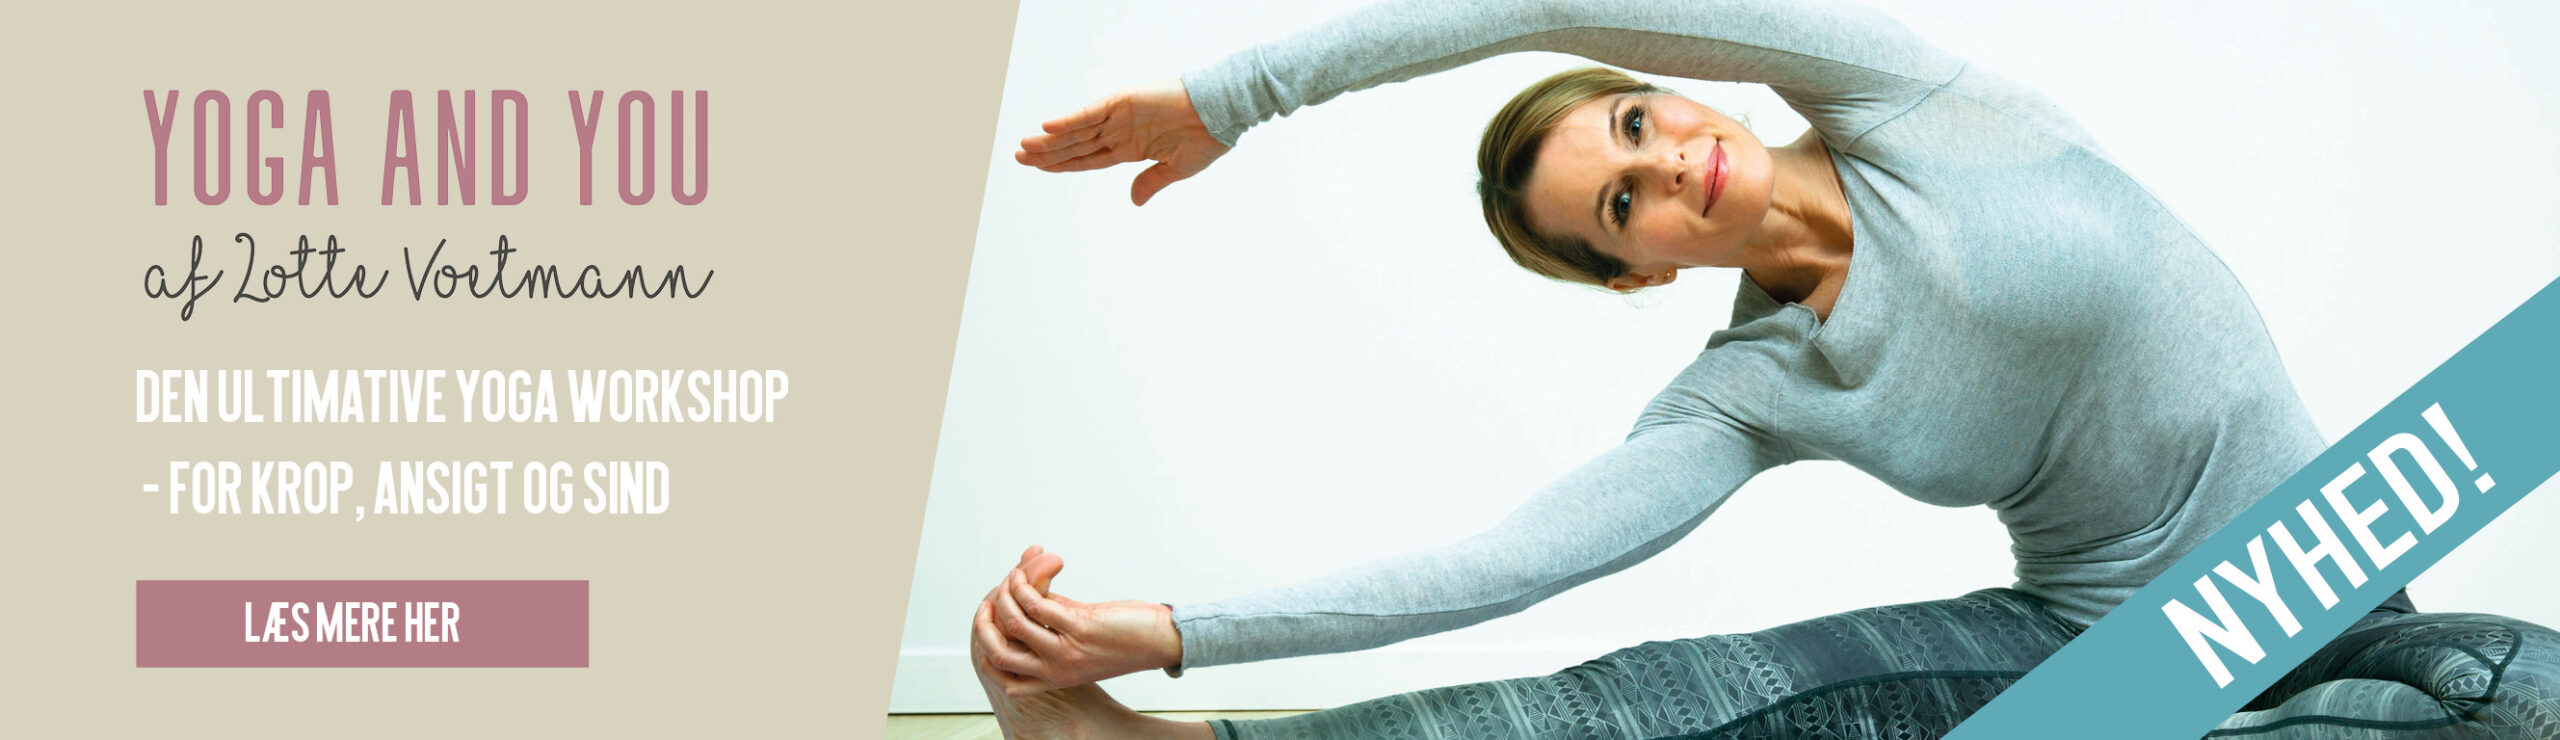 Yoga and you banner